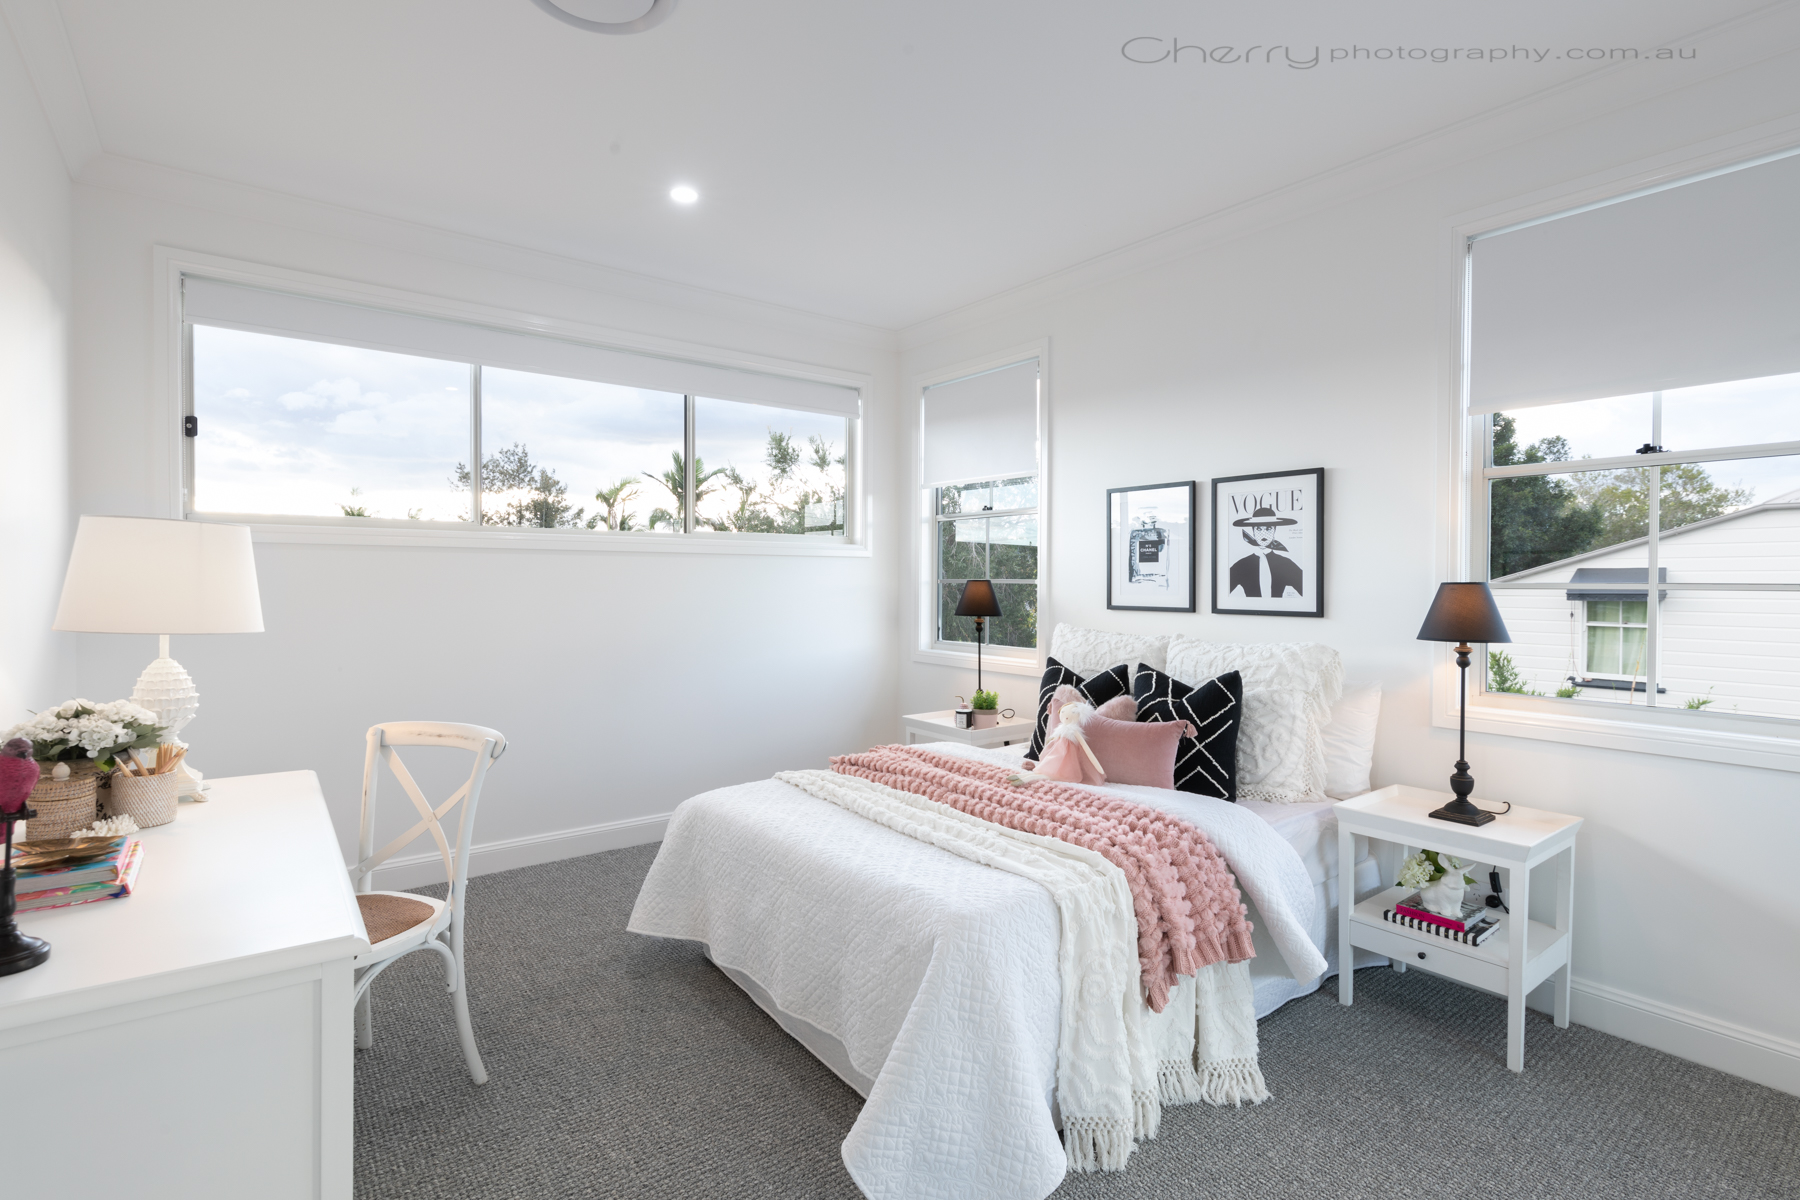 Cherry Photography Real Estate Brisbane